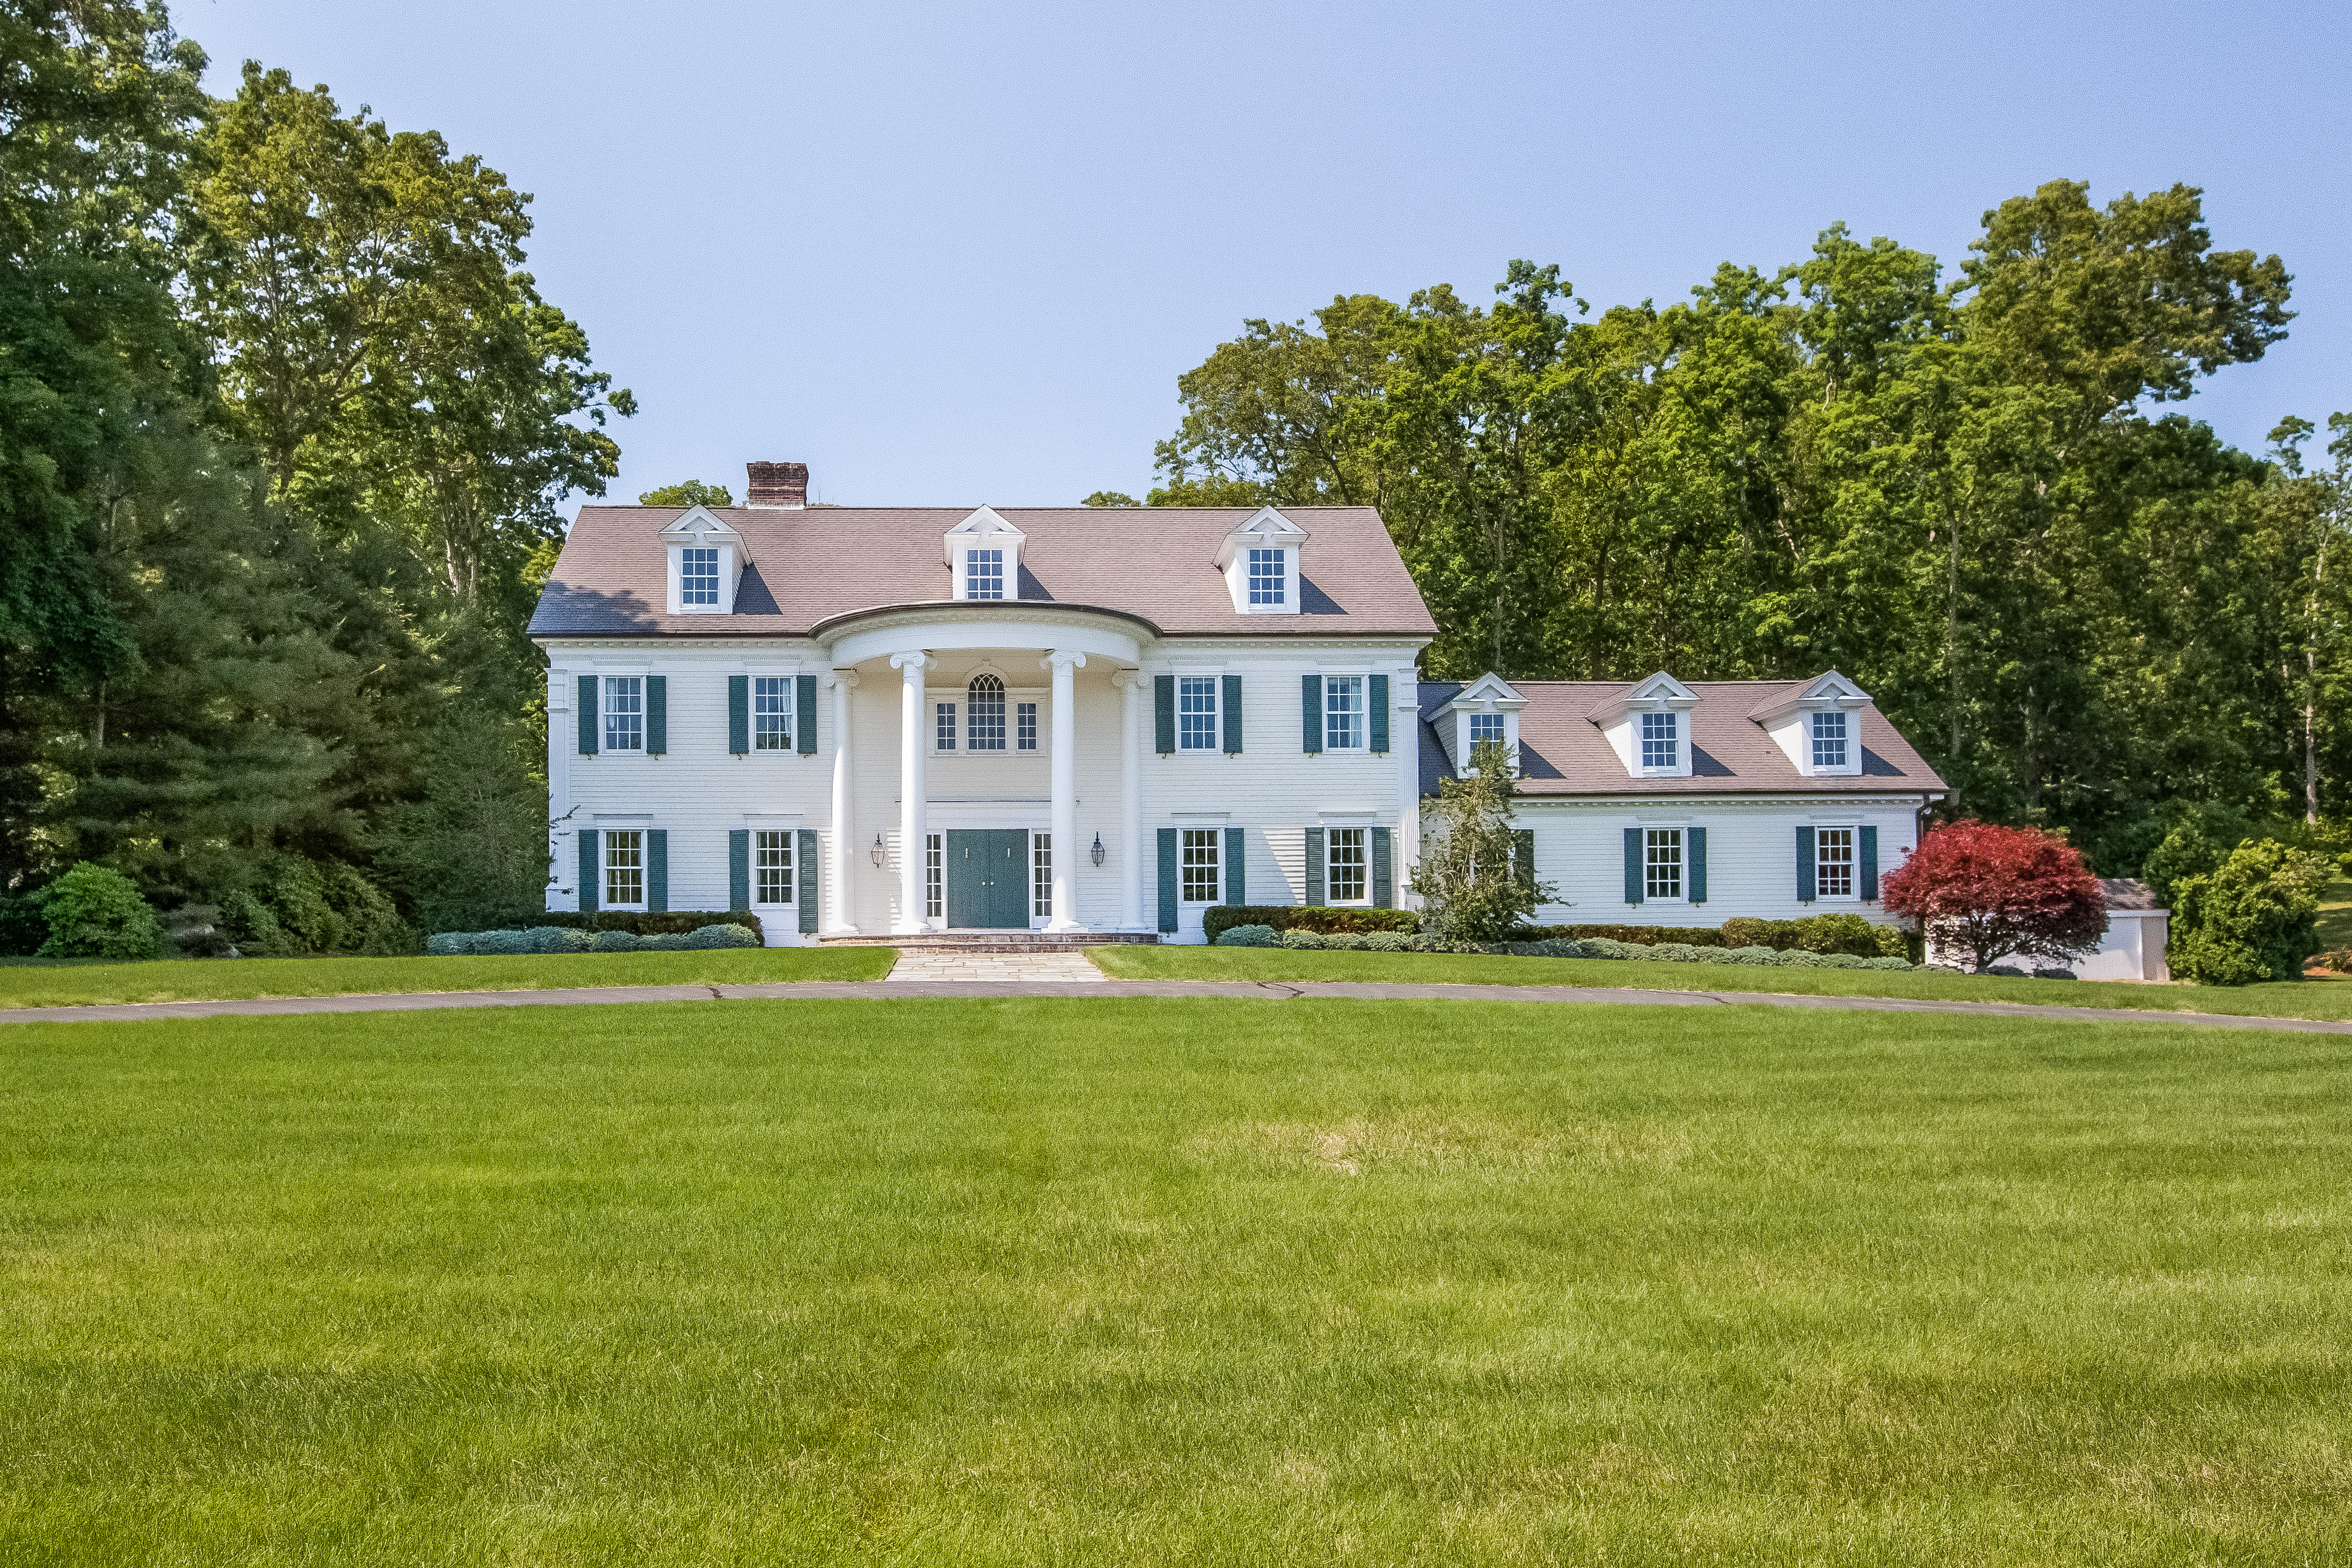 Single Family Home for Sale at 381 Boston Post Rd Madison, Connecticut, 06443 United States